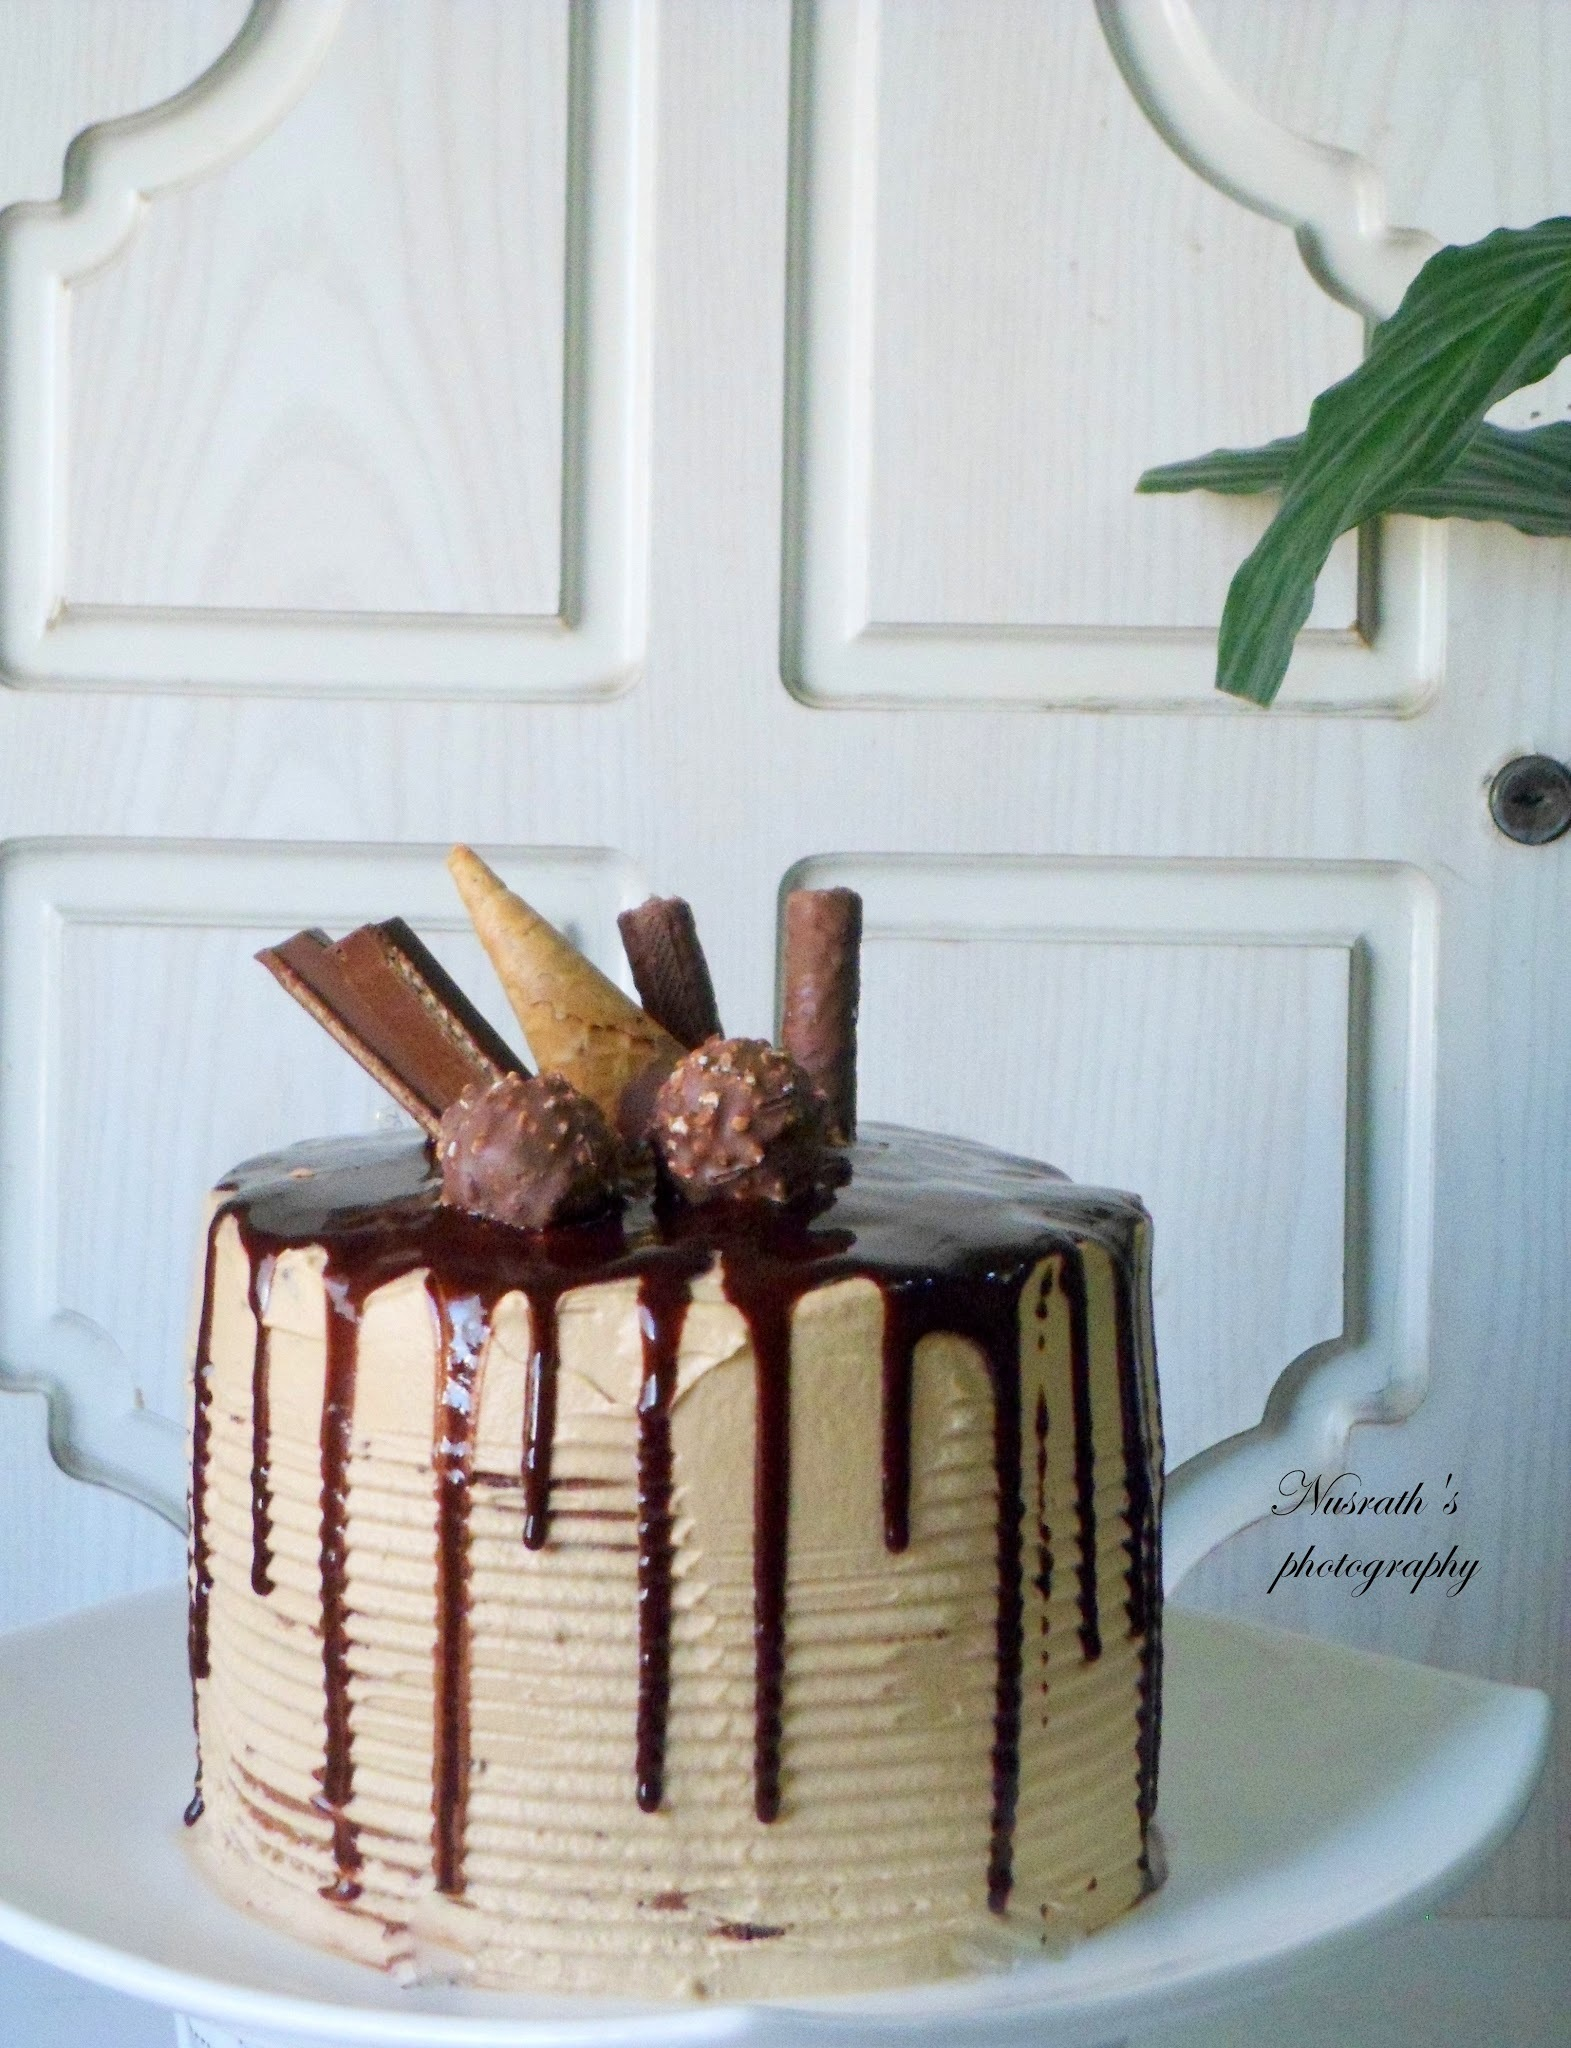 Checker board cake with chocolate ganache frosted with whipped coffee cream frosting |How to make checker board cake from scratch | Chocolate and vanilla cake baked from scratch and assembled to form a checker board cake